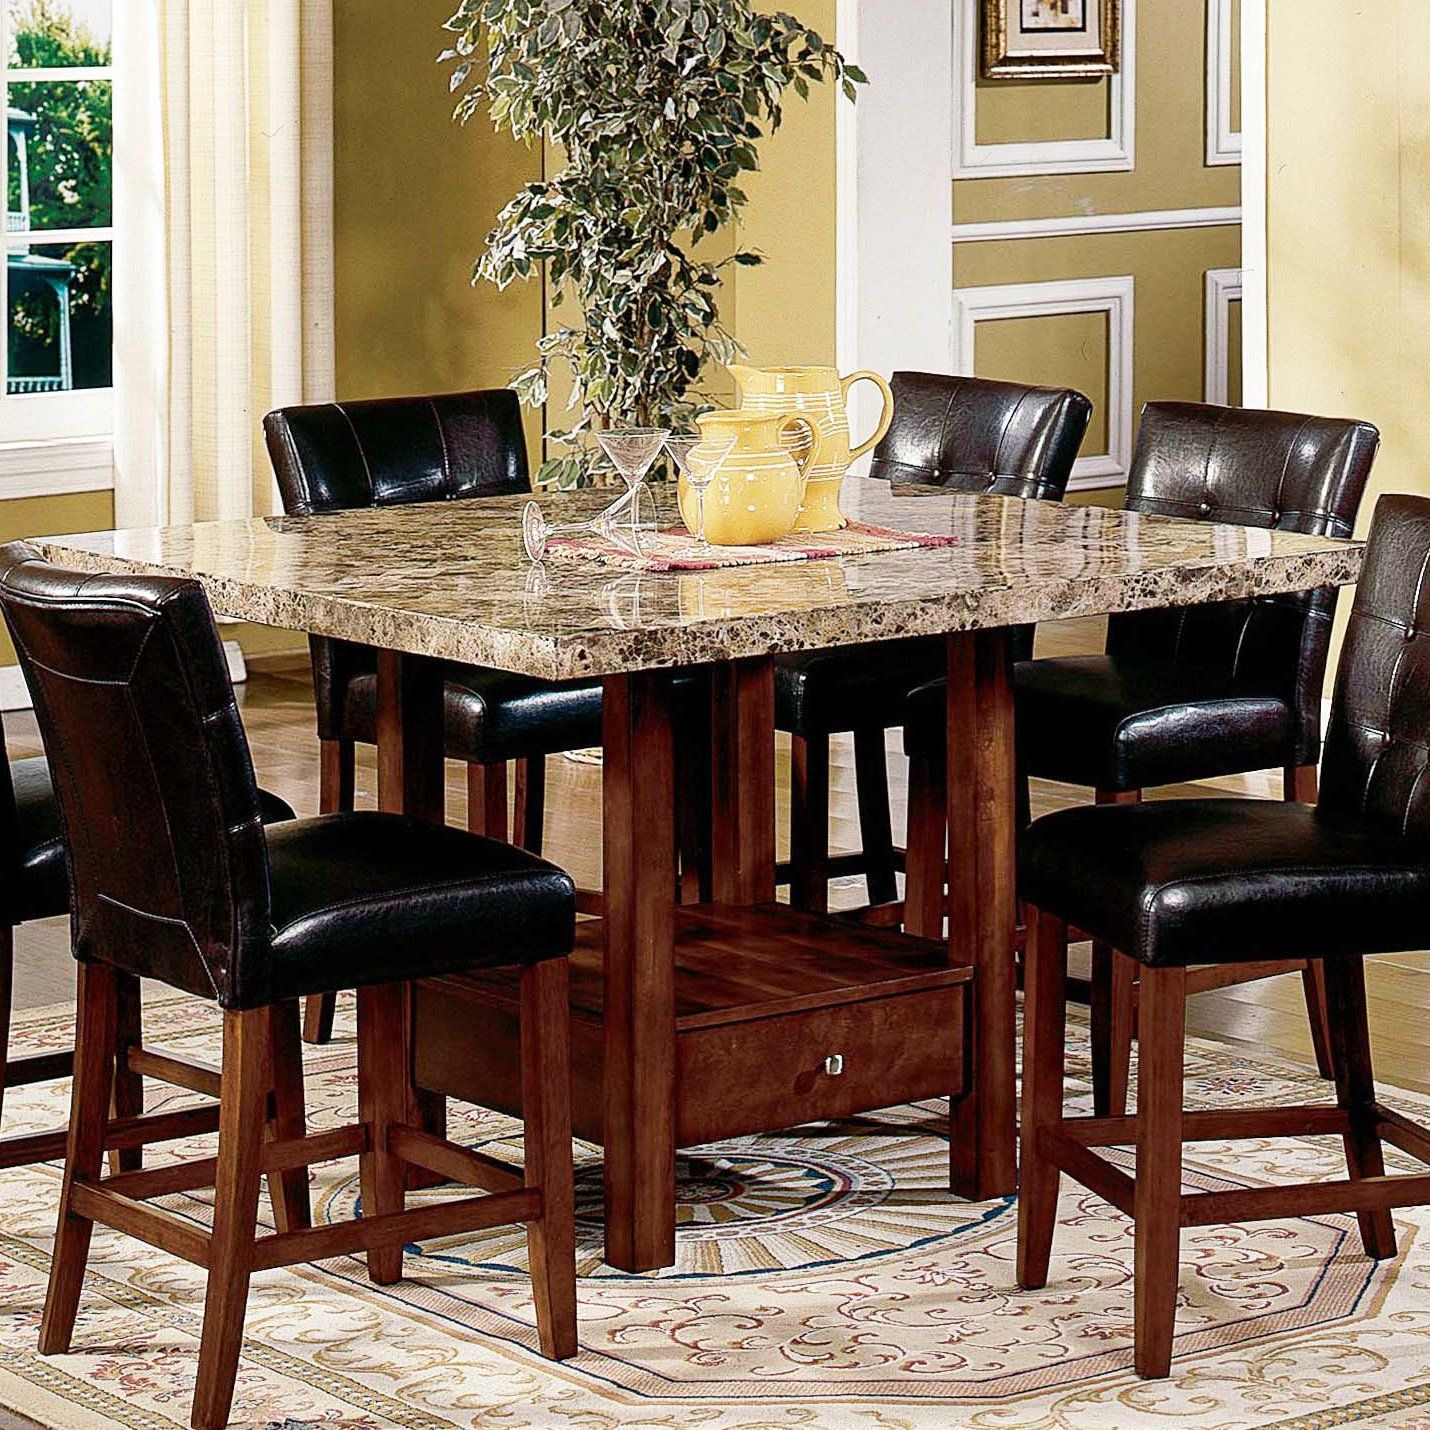 marble top kitchen dining table sets | Kitchen Table | Pinterest ...